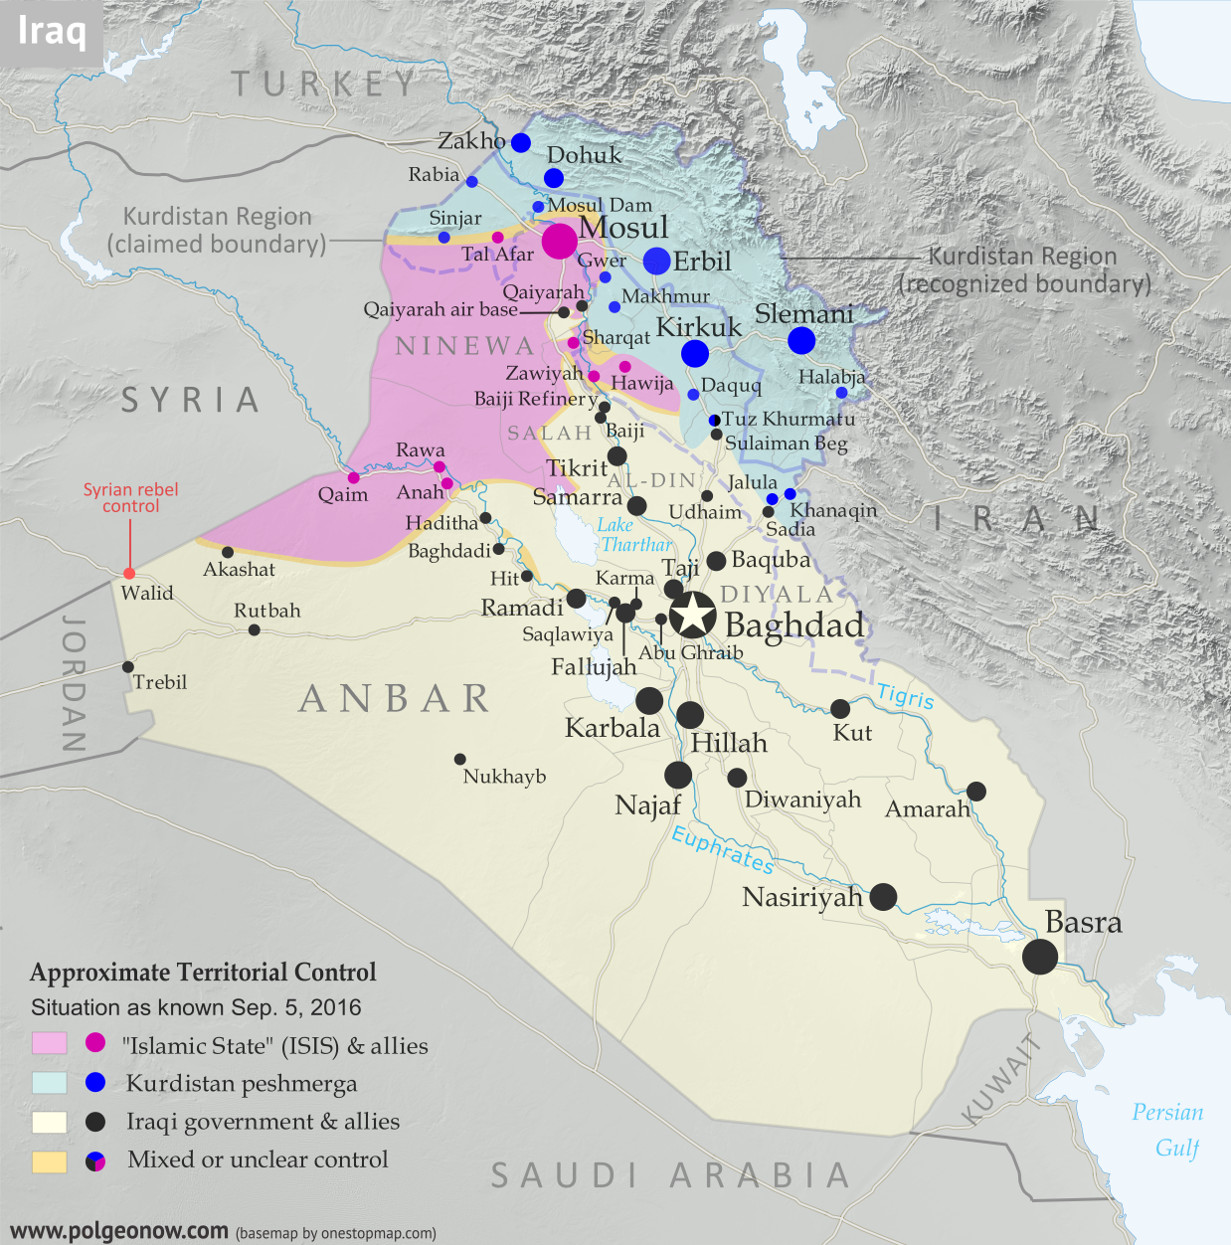 Detailed map of territorial control in Iraq as of September 5, 2016, including territory held by the so-called Islamic State (ISIS, ISIL), the Baghdad government, and the Kurdistan Peshmerga. Includes results of recent fighting around Qaiyarah (Qayyarah) south of Mosul. Color blind accessible.